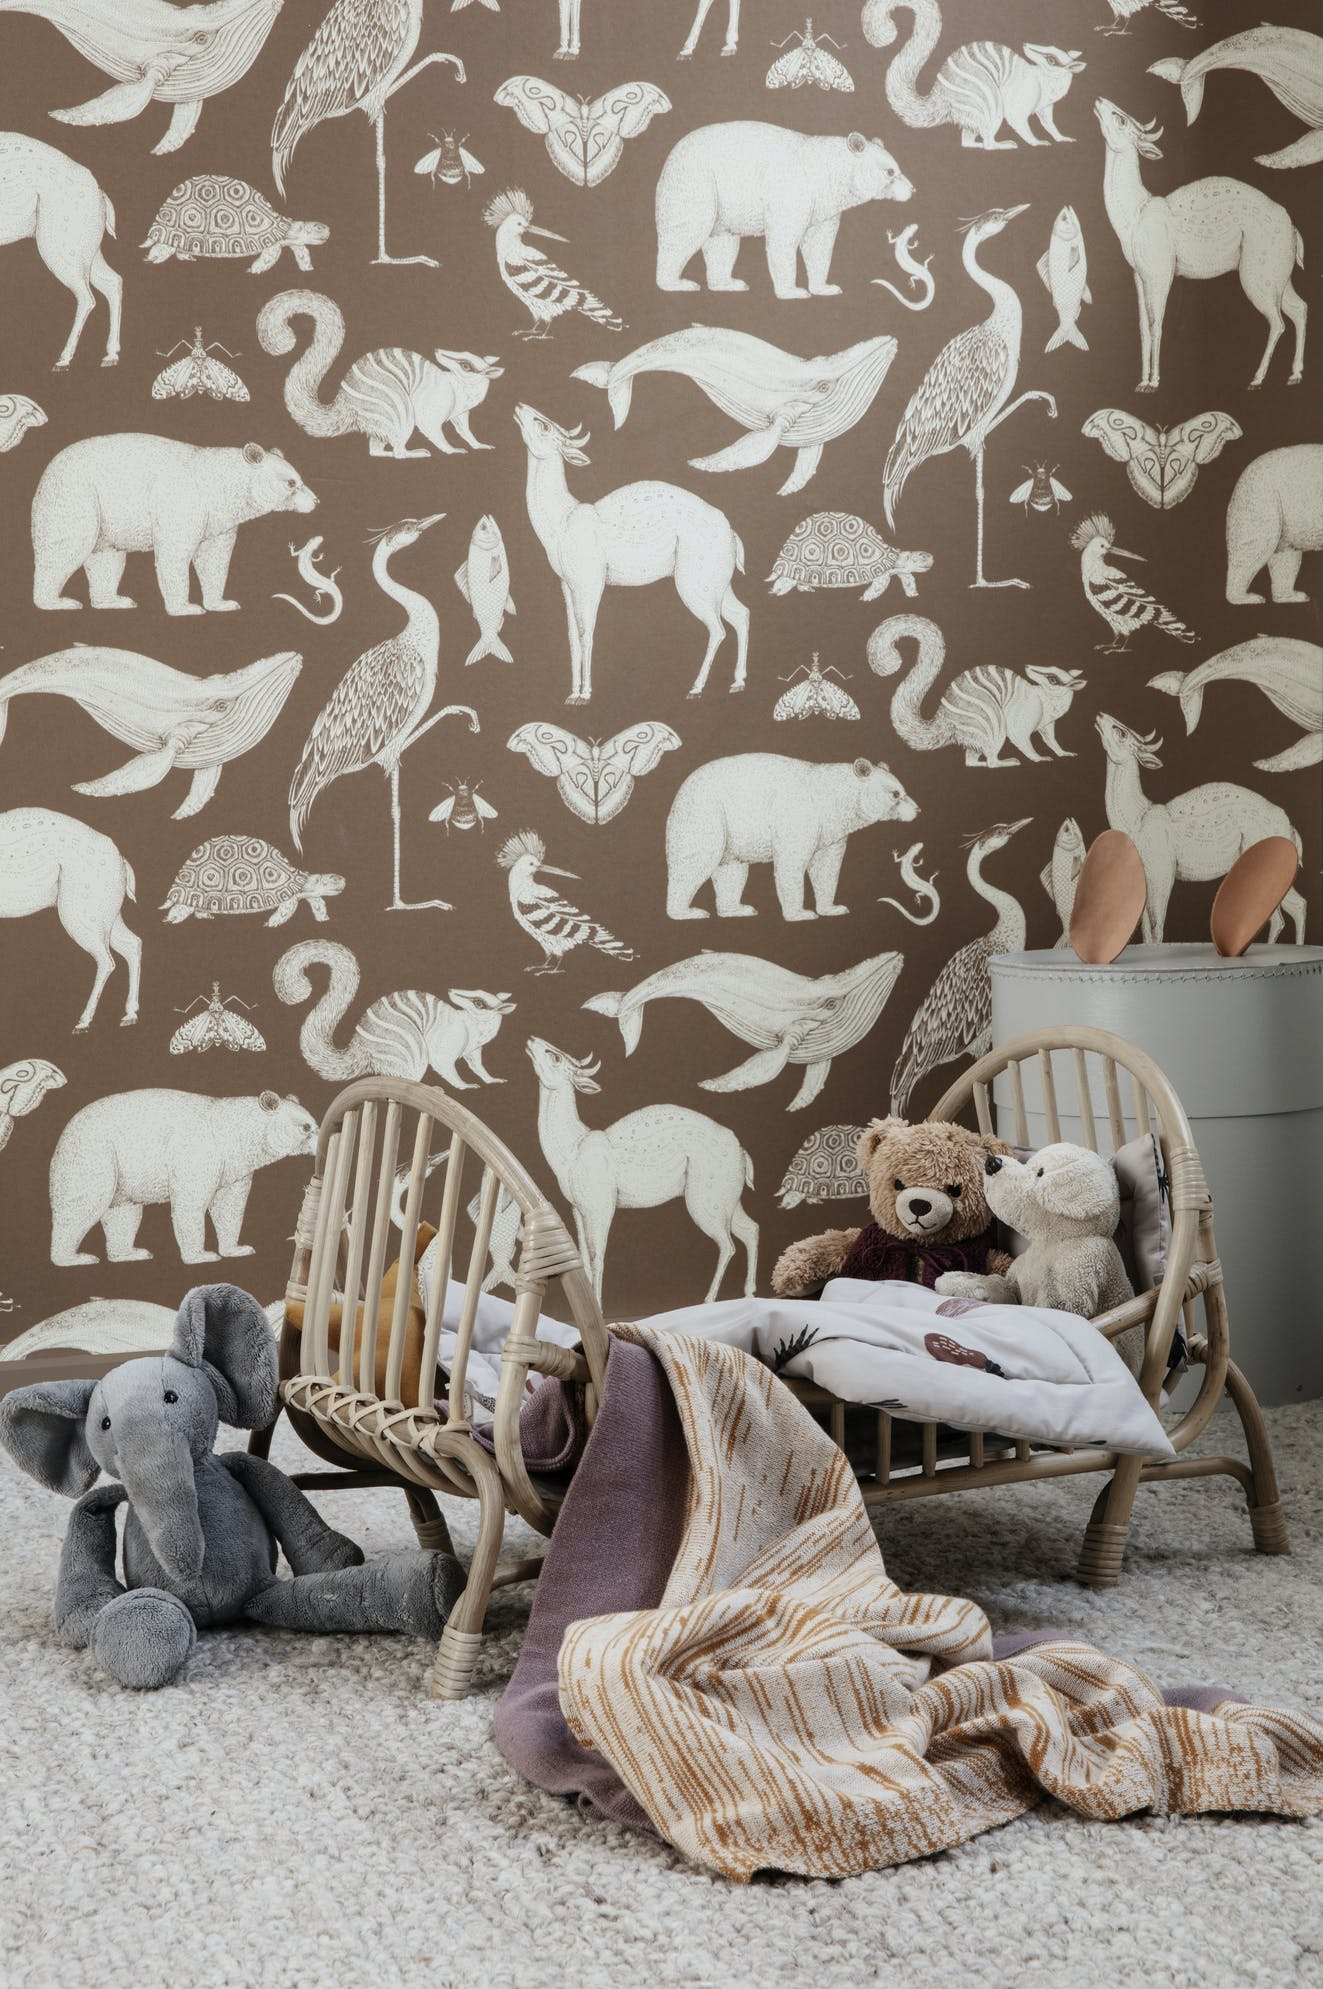 Ferm Living, Katie Scott Wallpaper - Animal